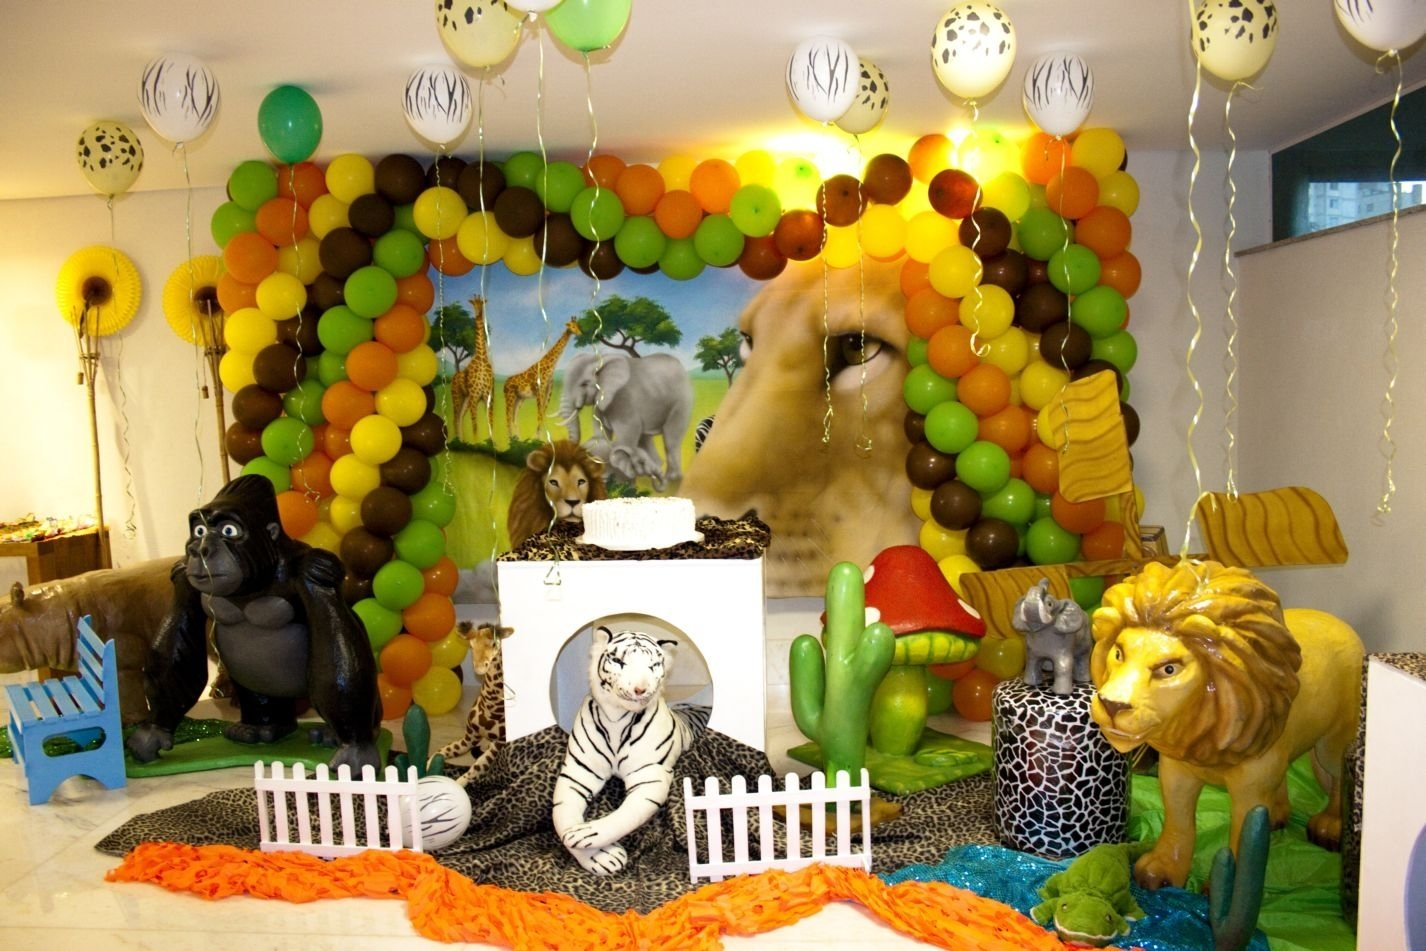 10 Awesome Jungle Themed Baby Shower Ideas safari baby shower decorations that look cute and beautiful home 2